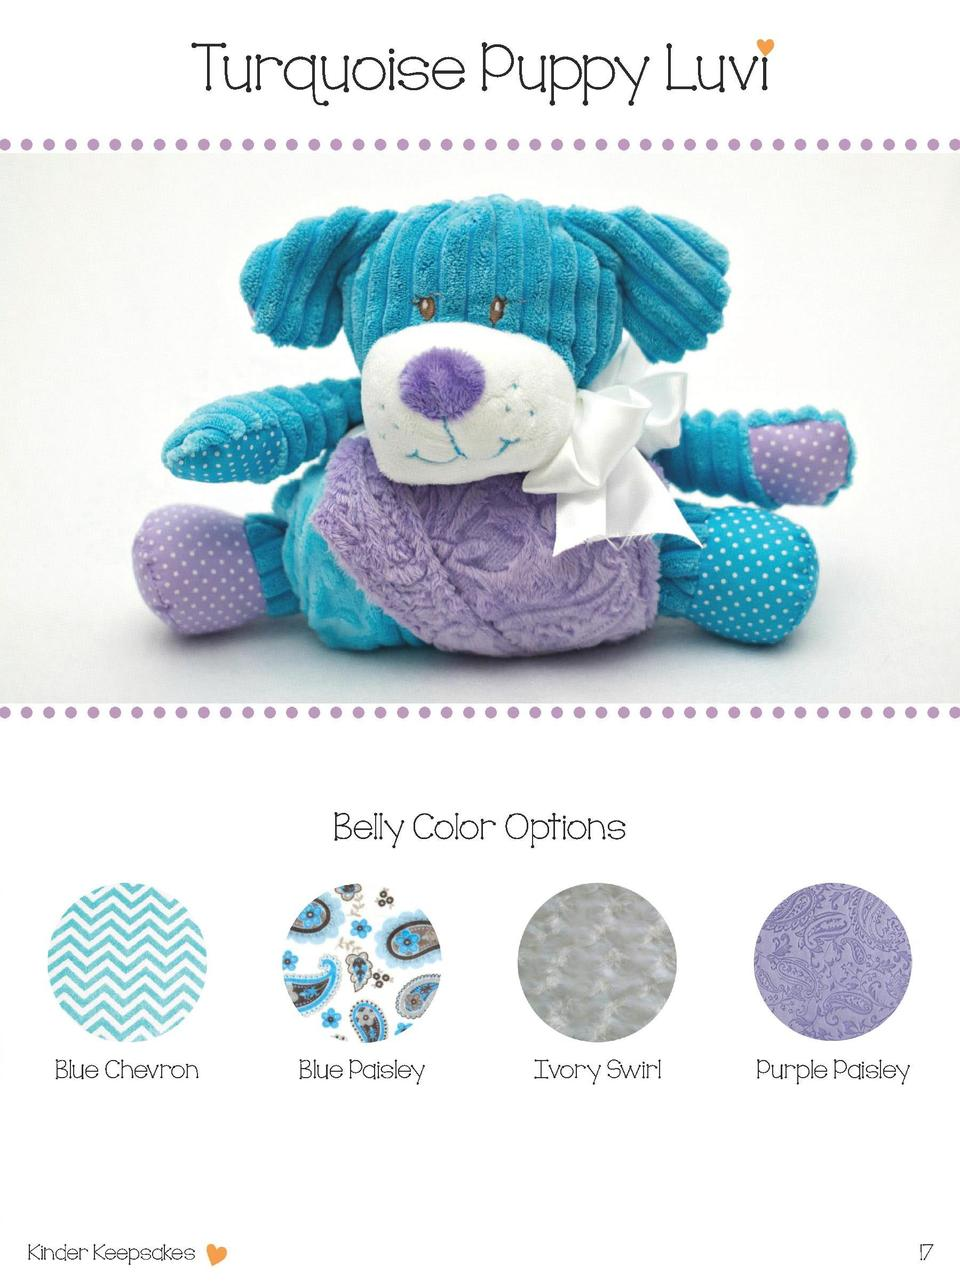 Turquoise Puppy Luvi  Belly Color Options  Blue Chevron  Kinder Keepsakes  Blue Paisley  Ivory Swirl  Purple Paisley  17  ...